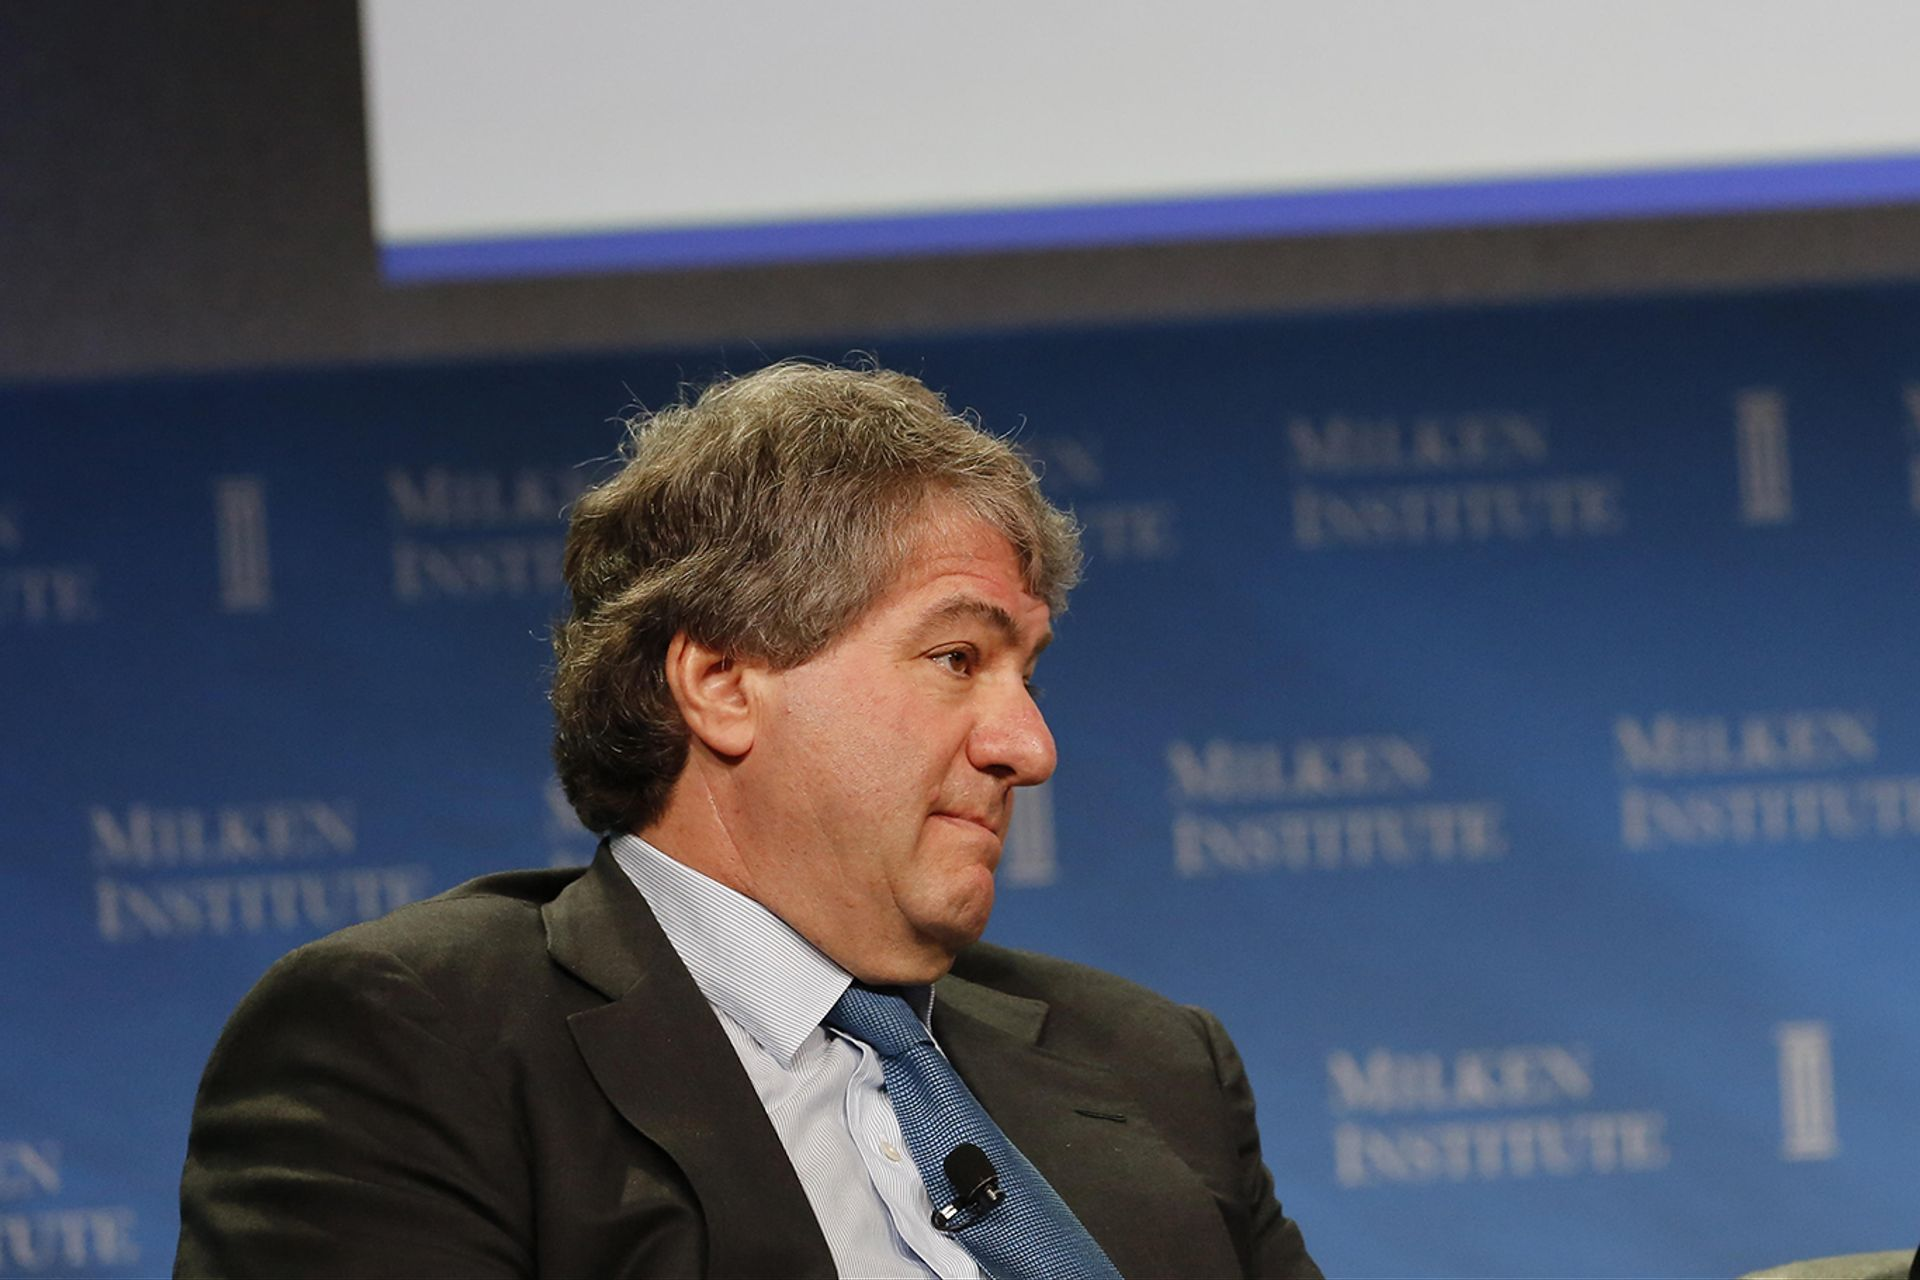 Leon Black, who has resigned as chairman of the equity firm Apollo Global Management and leads the board of trustees at the Museum of Modern Art ZUMA Press/Alamy Stock Photo